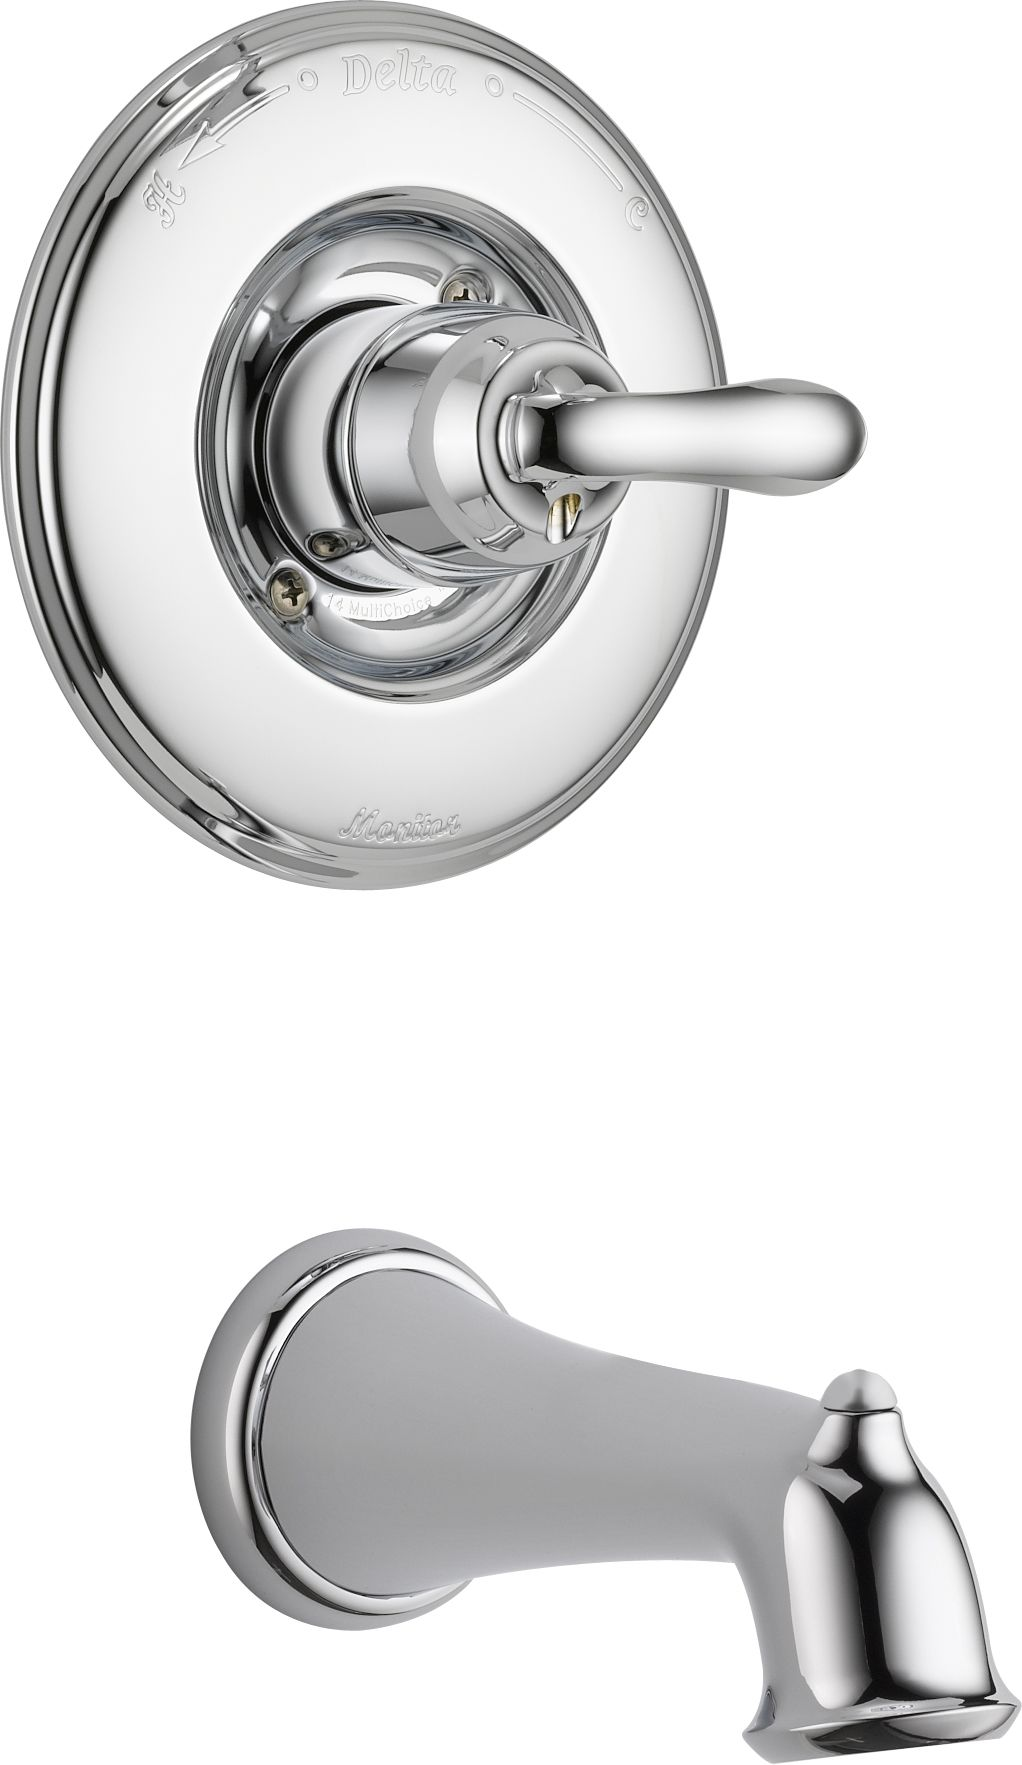 Delta T14194 Chrome Linden Monitor 14 Series Single Function Pressure  Balanced Wall Mounted Bathtub Faucet Only Trim Package   Less Rough In  Valve   Faucet. ...